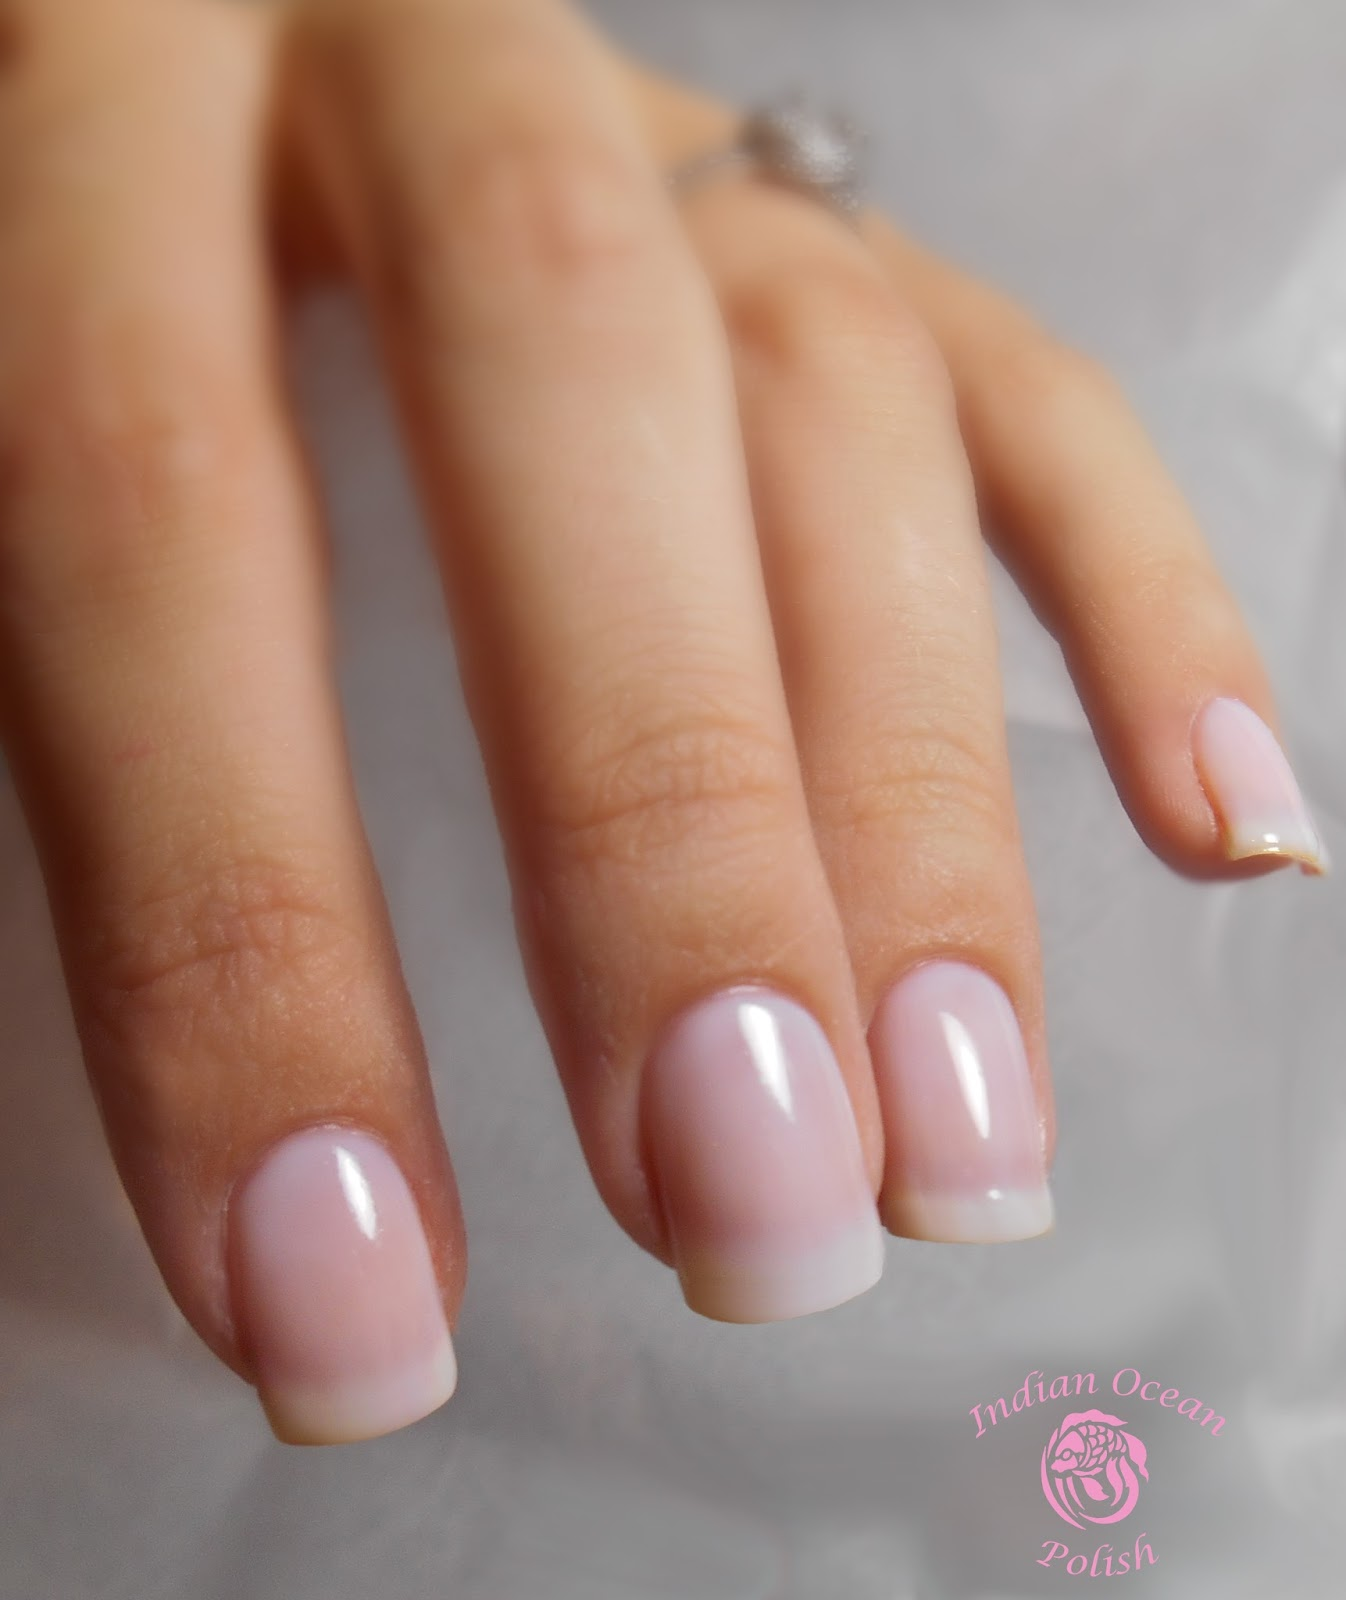 Indian Ocean Polish: Bridal Nails Special!